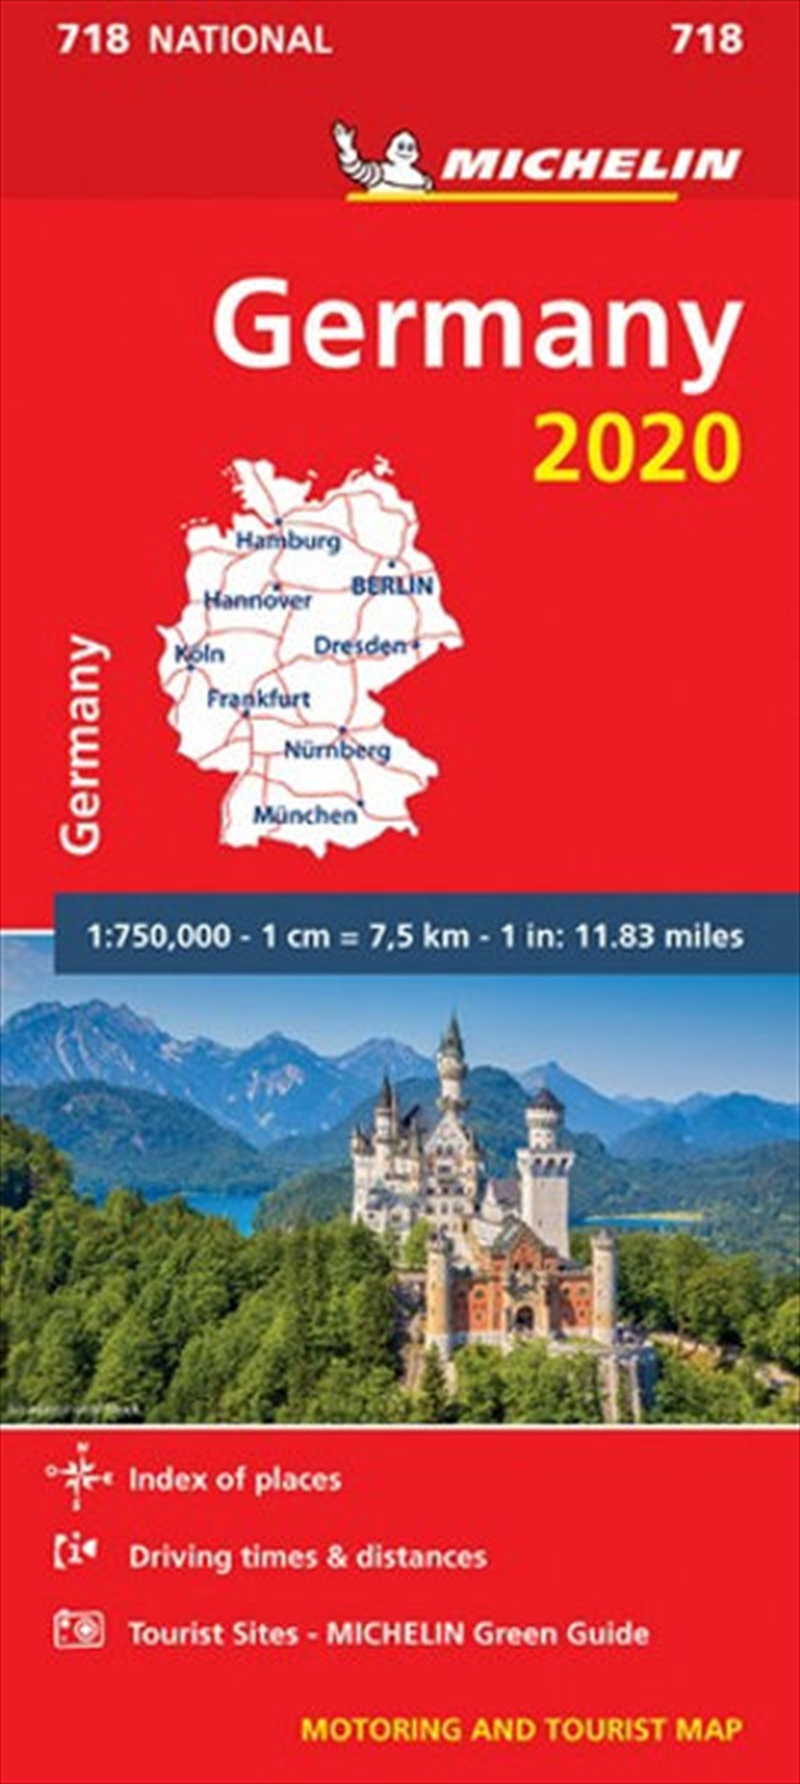 Germany 2020 Michelin National Road Map 718 | Sheet Map